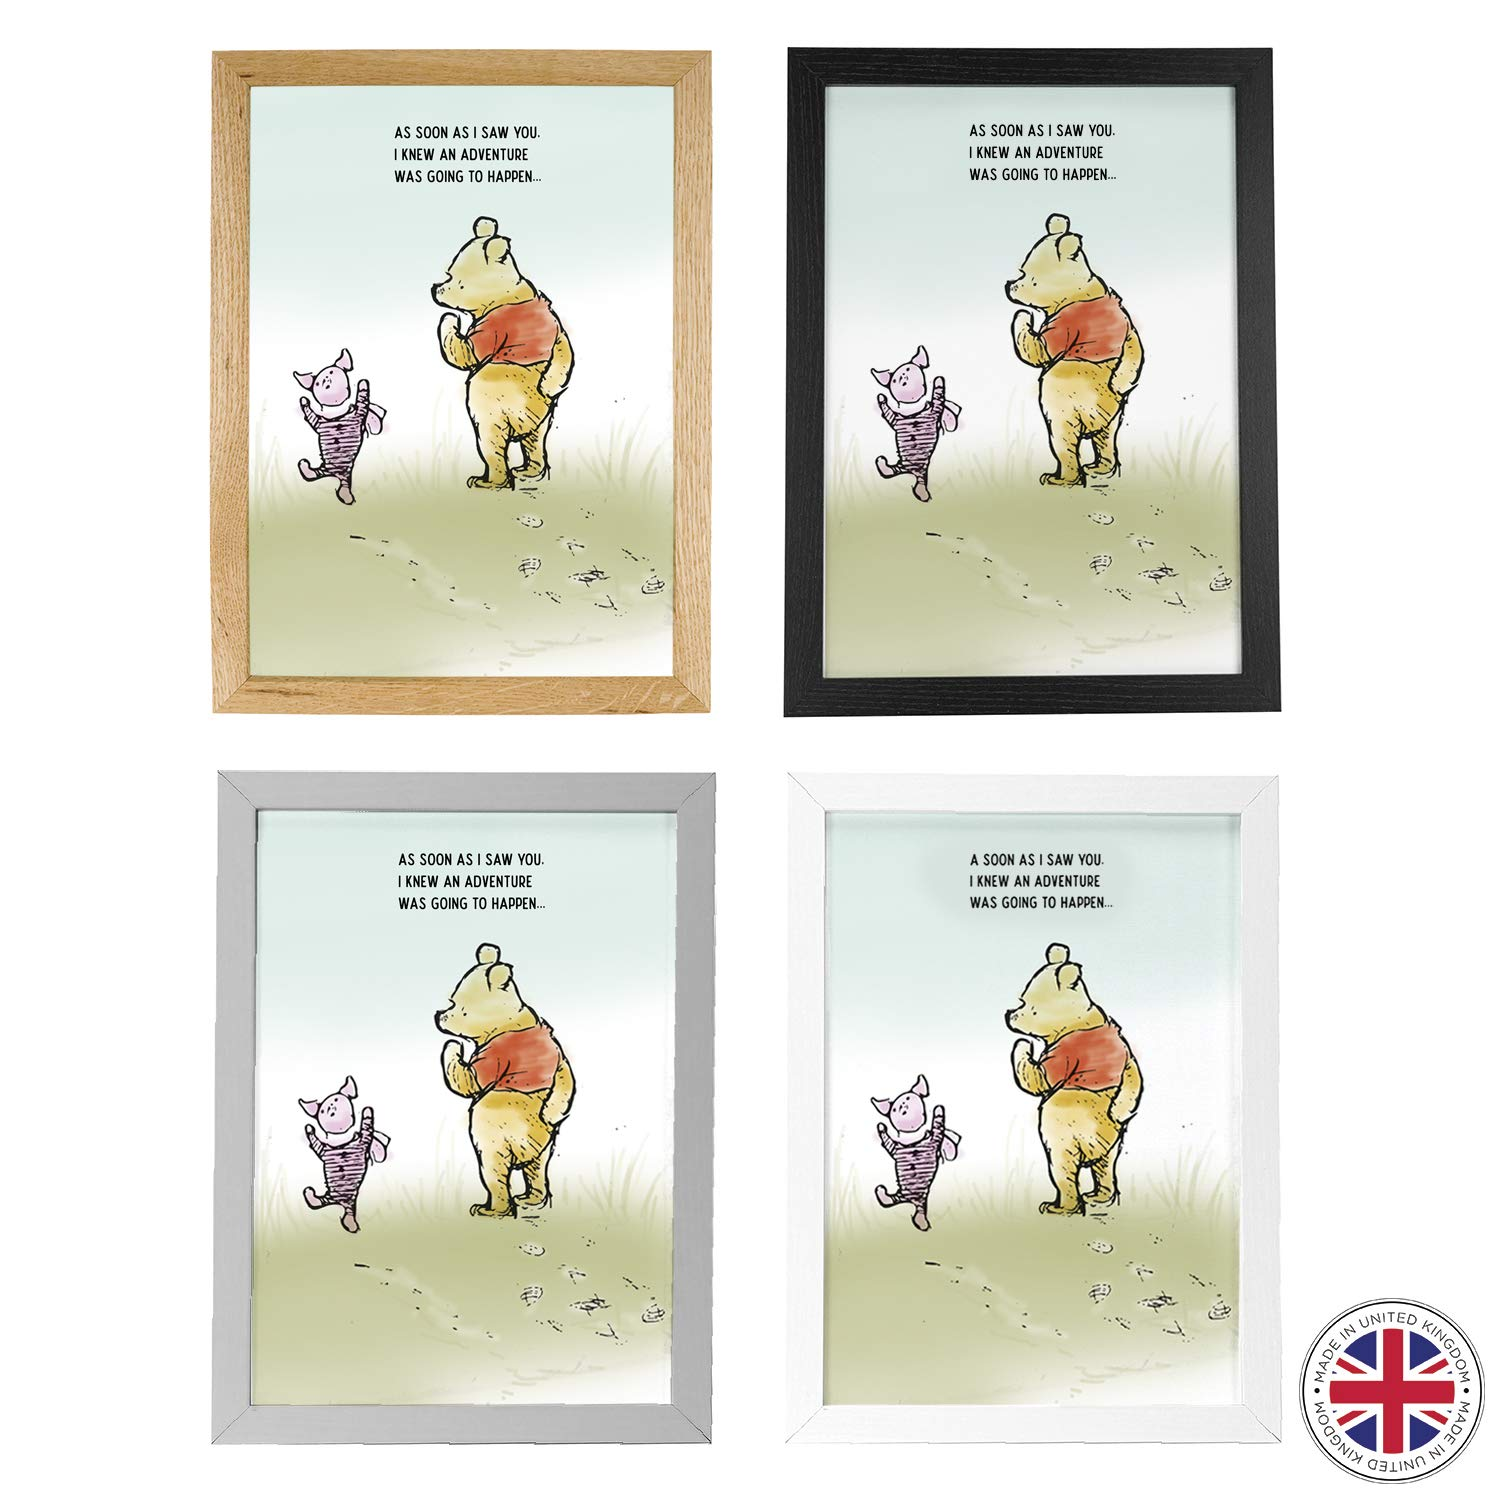 CUSTOMISED Sweet Winnie The Pooh Art Print featuring Eeyore Charming Design A4 and A5 Wooden Frames Available Made in UK A3 Sweet